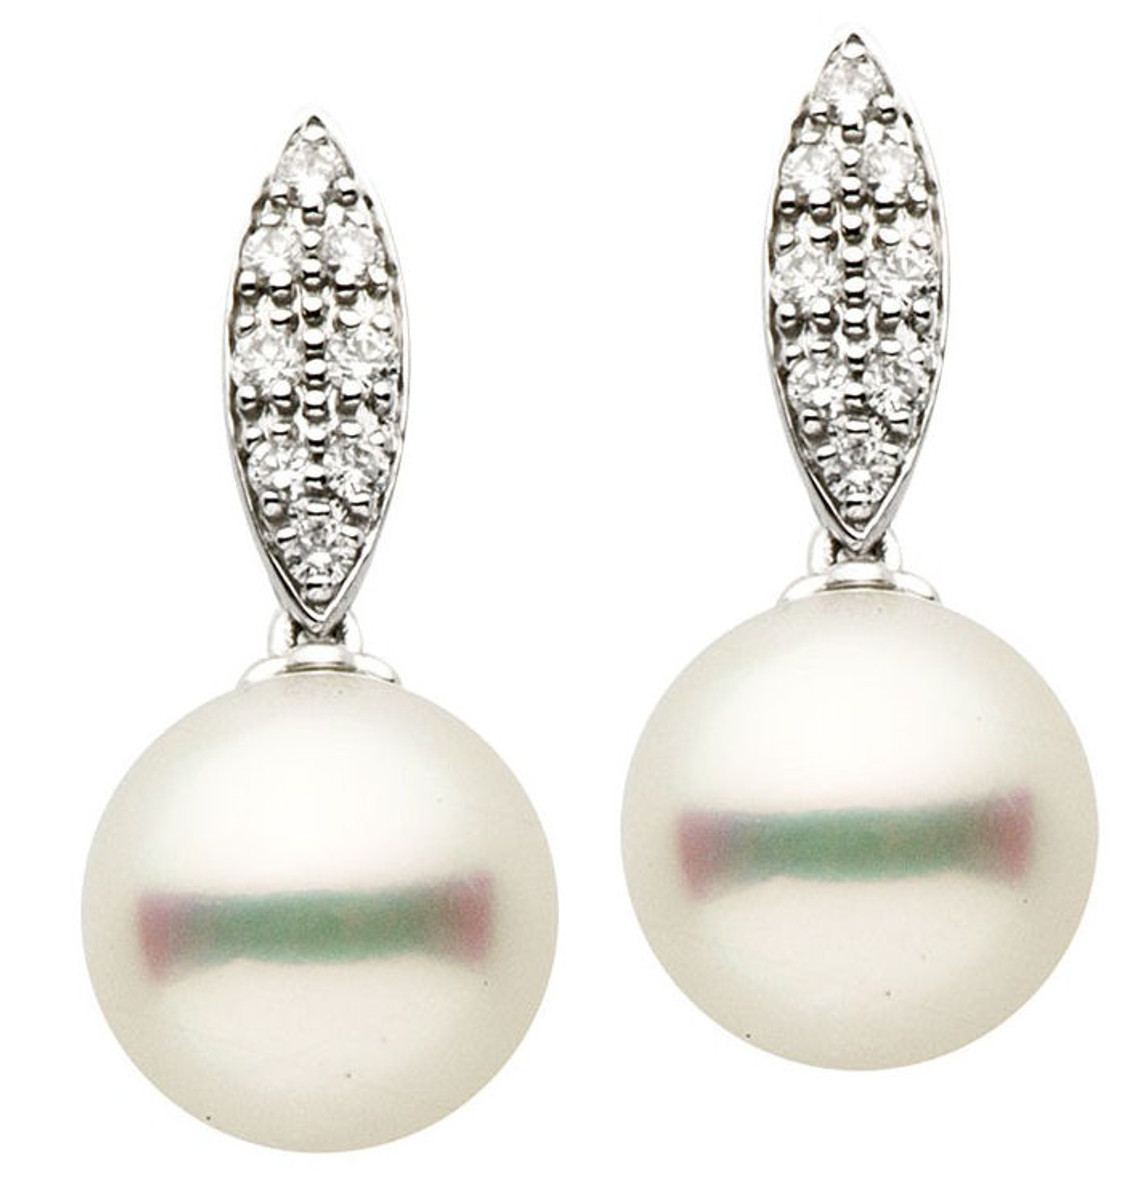 South Sea Cultured Pearls & Diamond Earrings